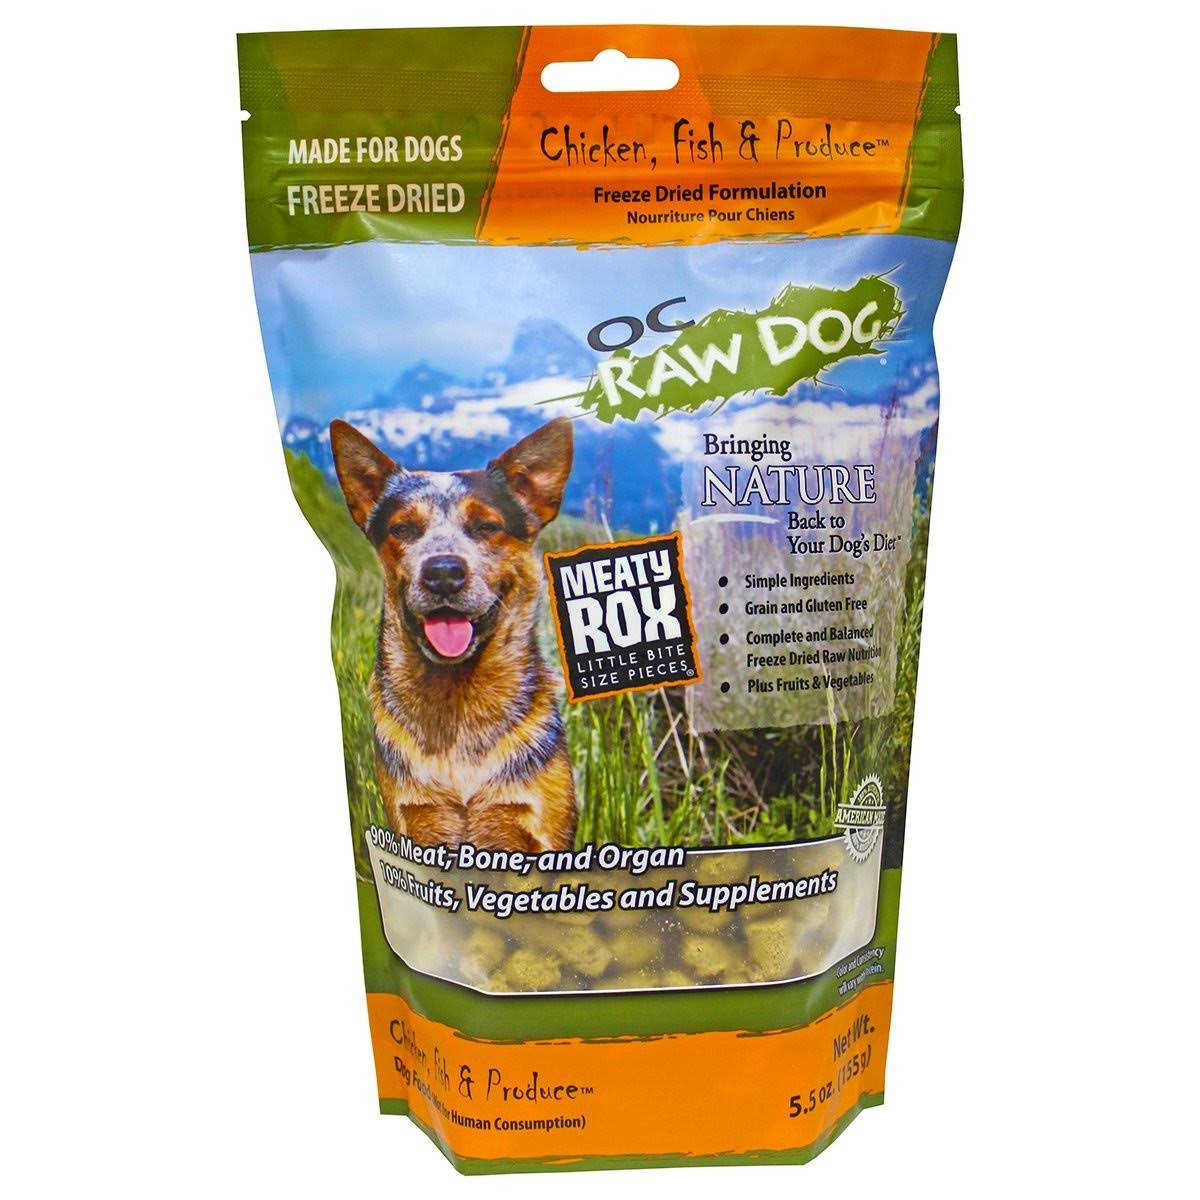 O.C. Raw Freeze Dried Chicken, Fish & Produce Rox 5.5 oz Dog Food